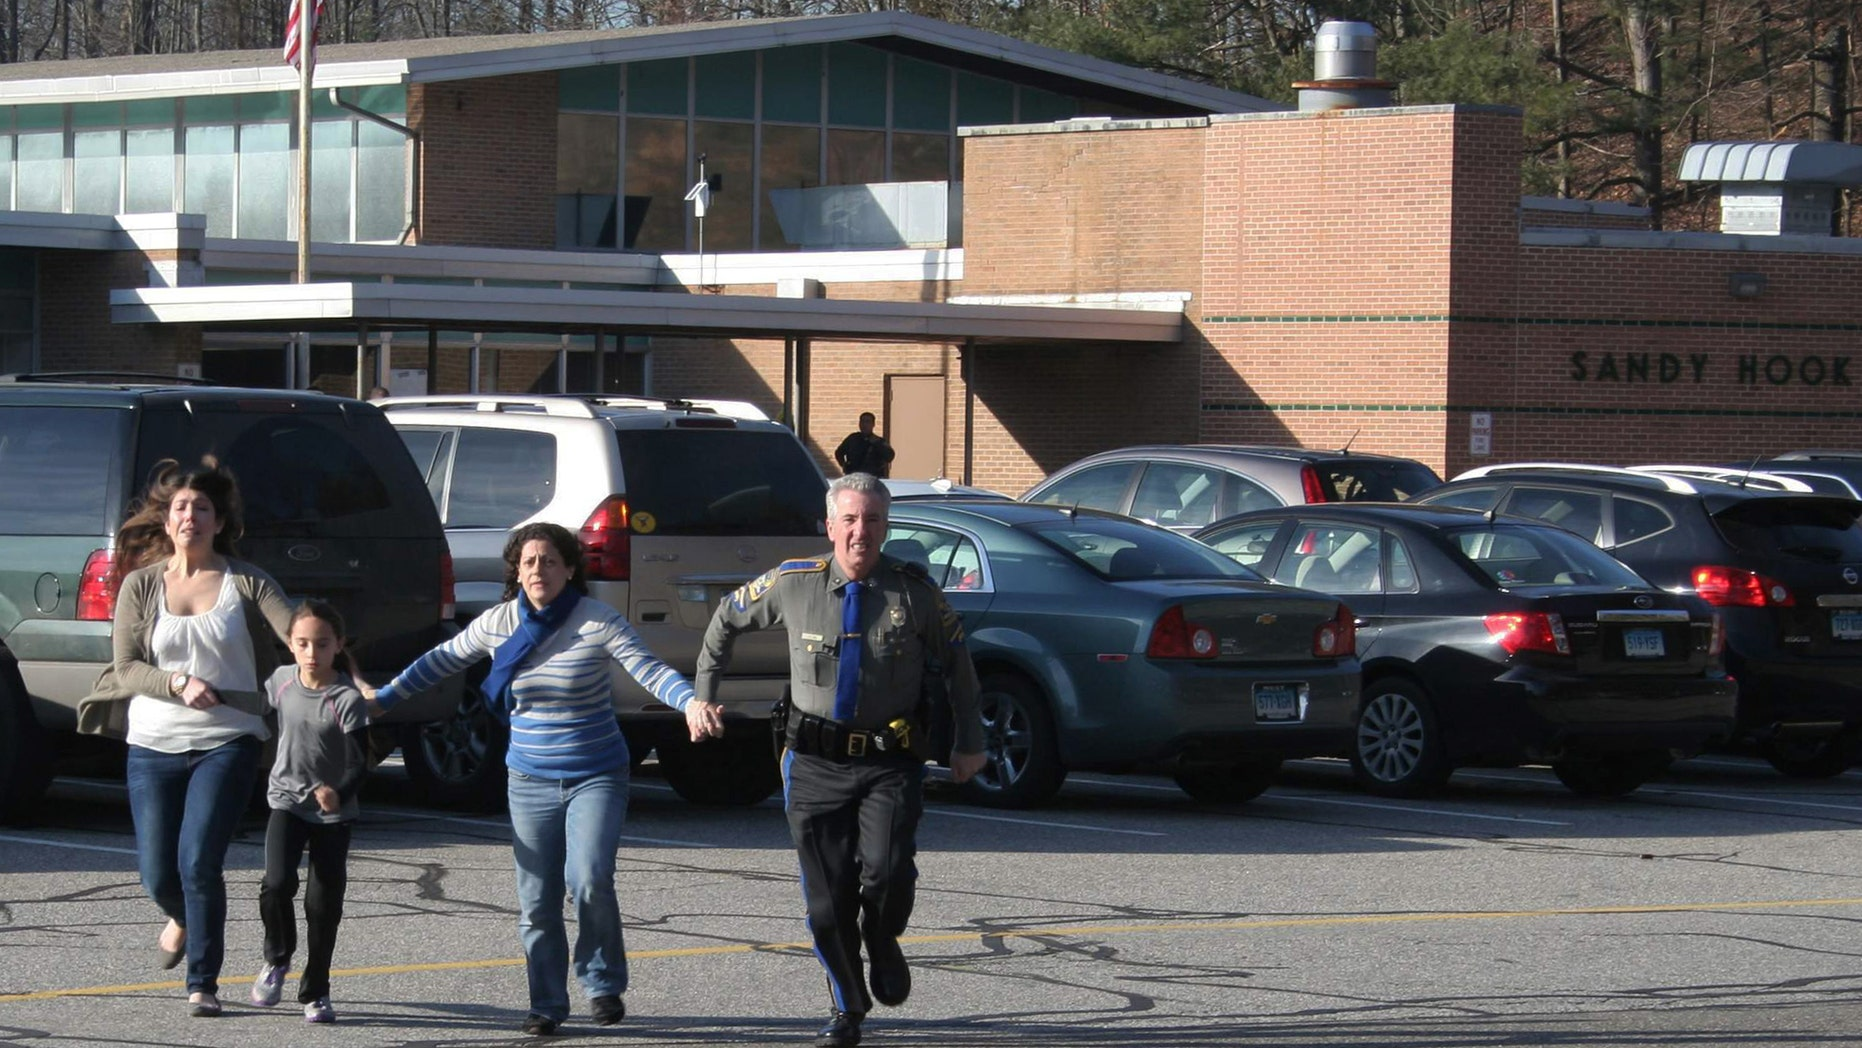 A police officer leads two women and a child from Sandy Hook Elementary School in Newtown, Conn., on Friday,  Dec. 14, 2012.